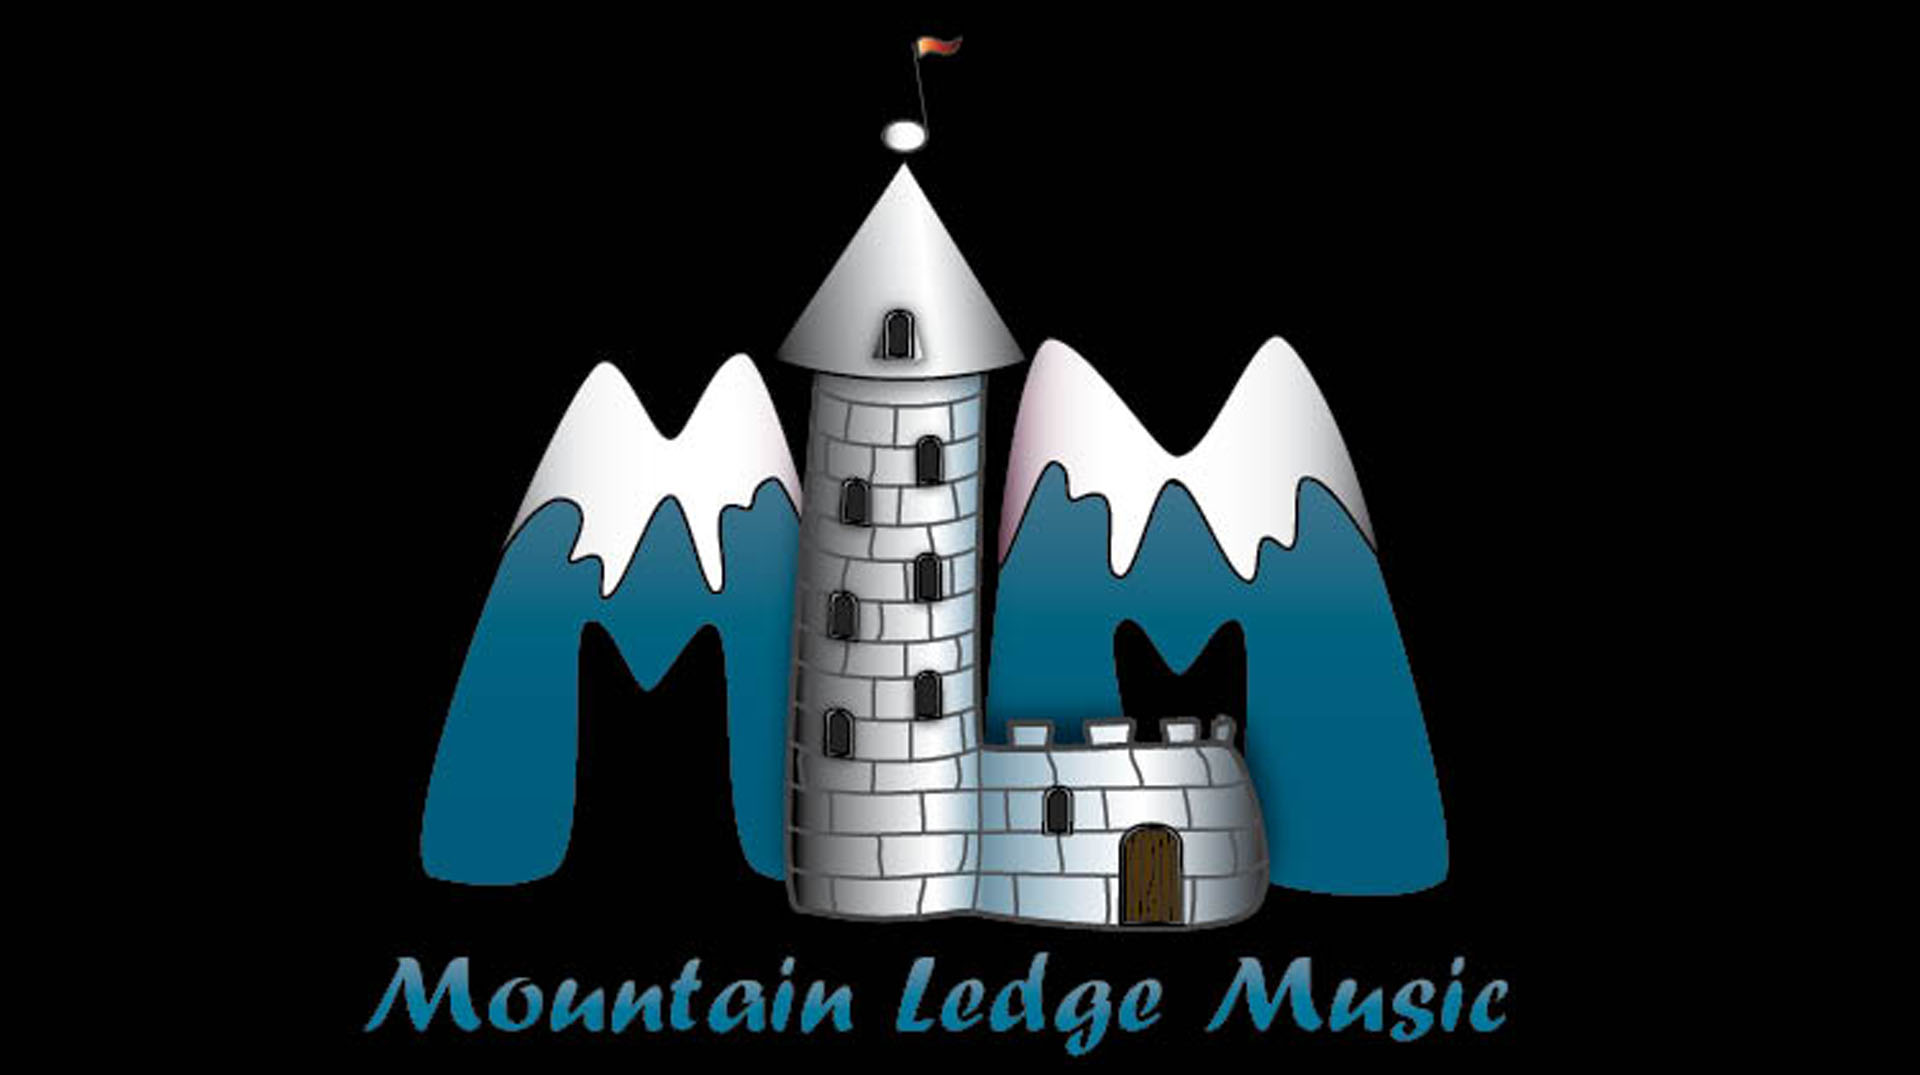 Mountain Ledge Music  (Ledgewood, Morris County) ** Featured Business Stage Management, Recording, Graphics, Photography, Web Design